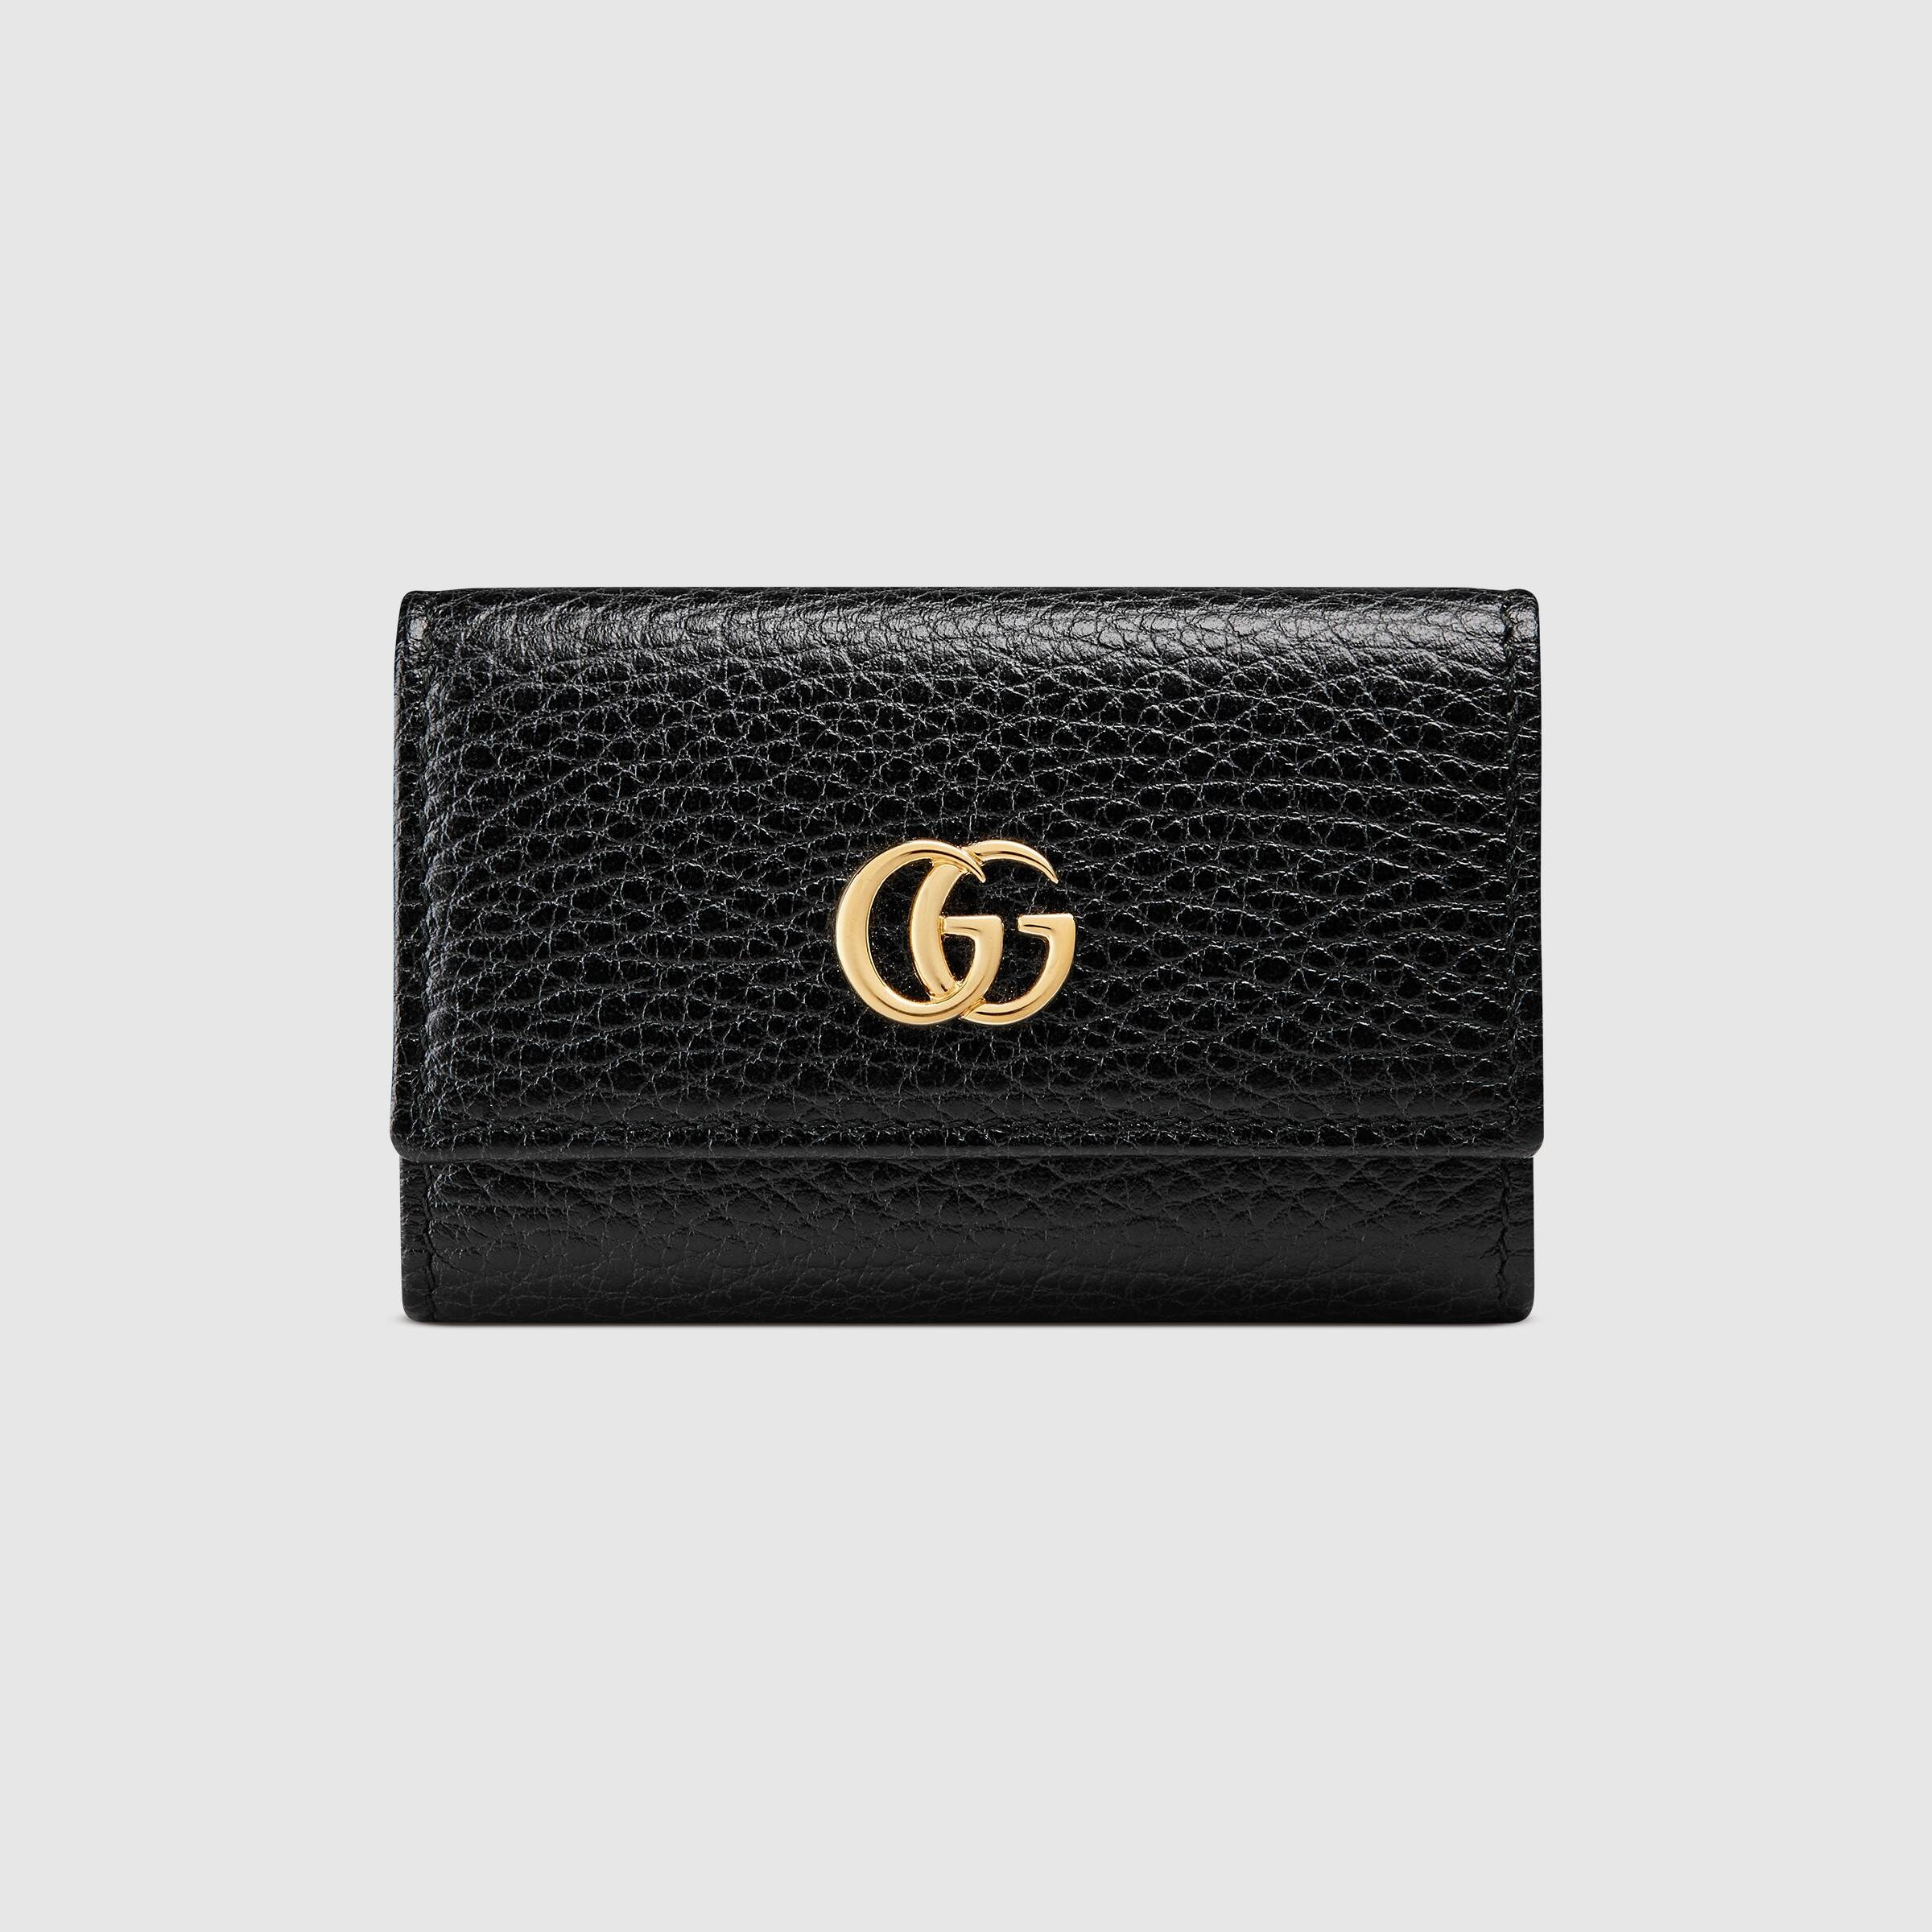 Gucci GG Marmont leather key case 456118 CAO0G 1000